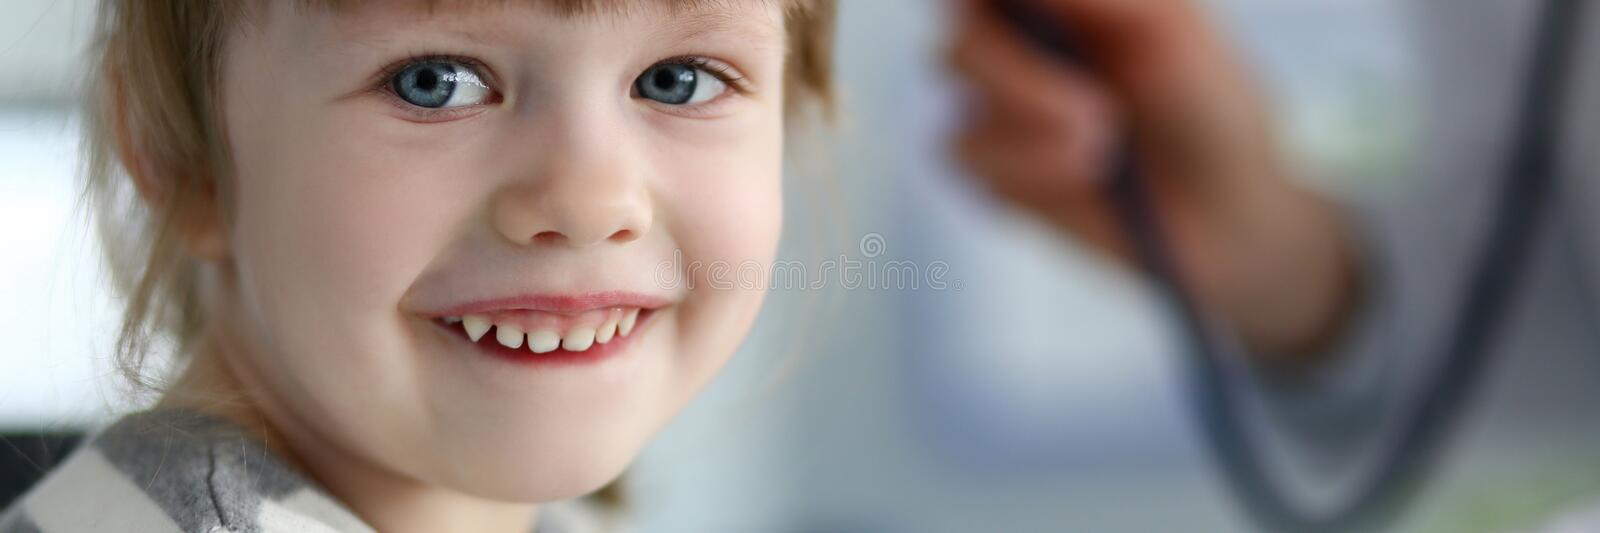 Smiling cute little patient interacting with female doctor royalty free stock photos